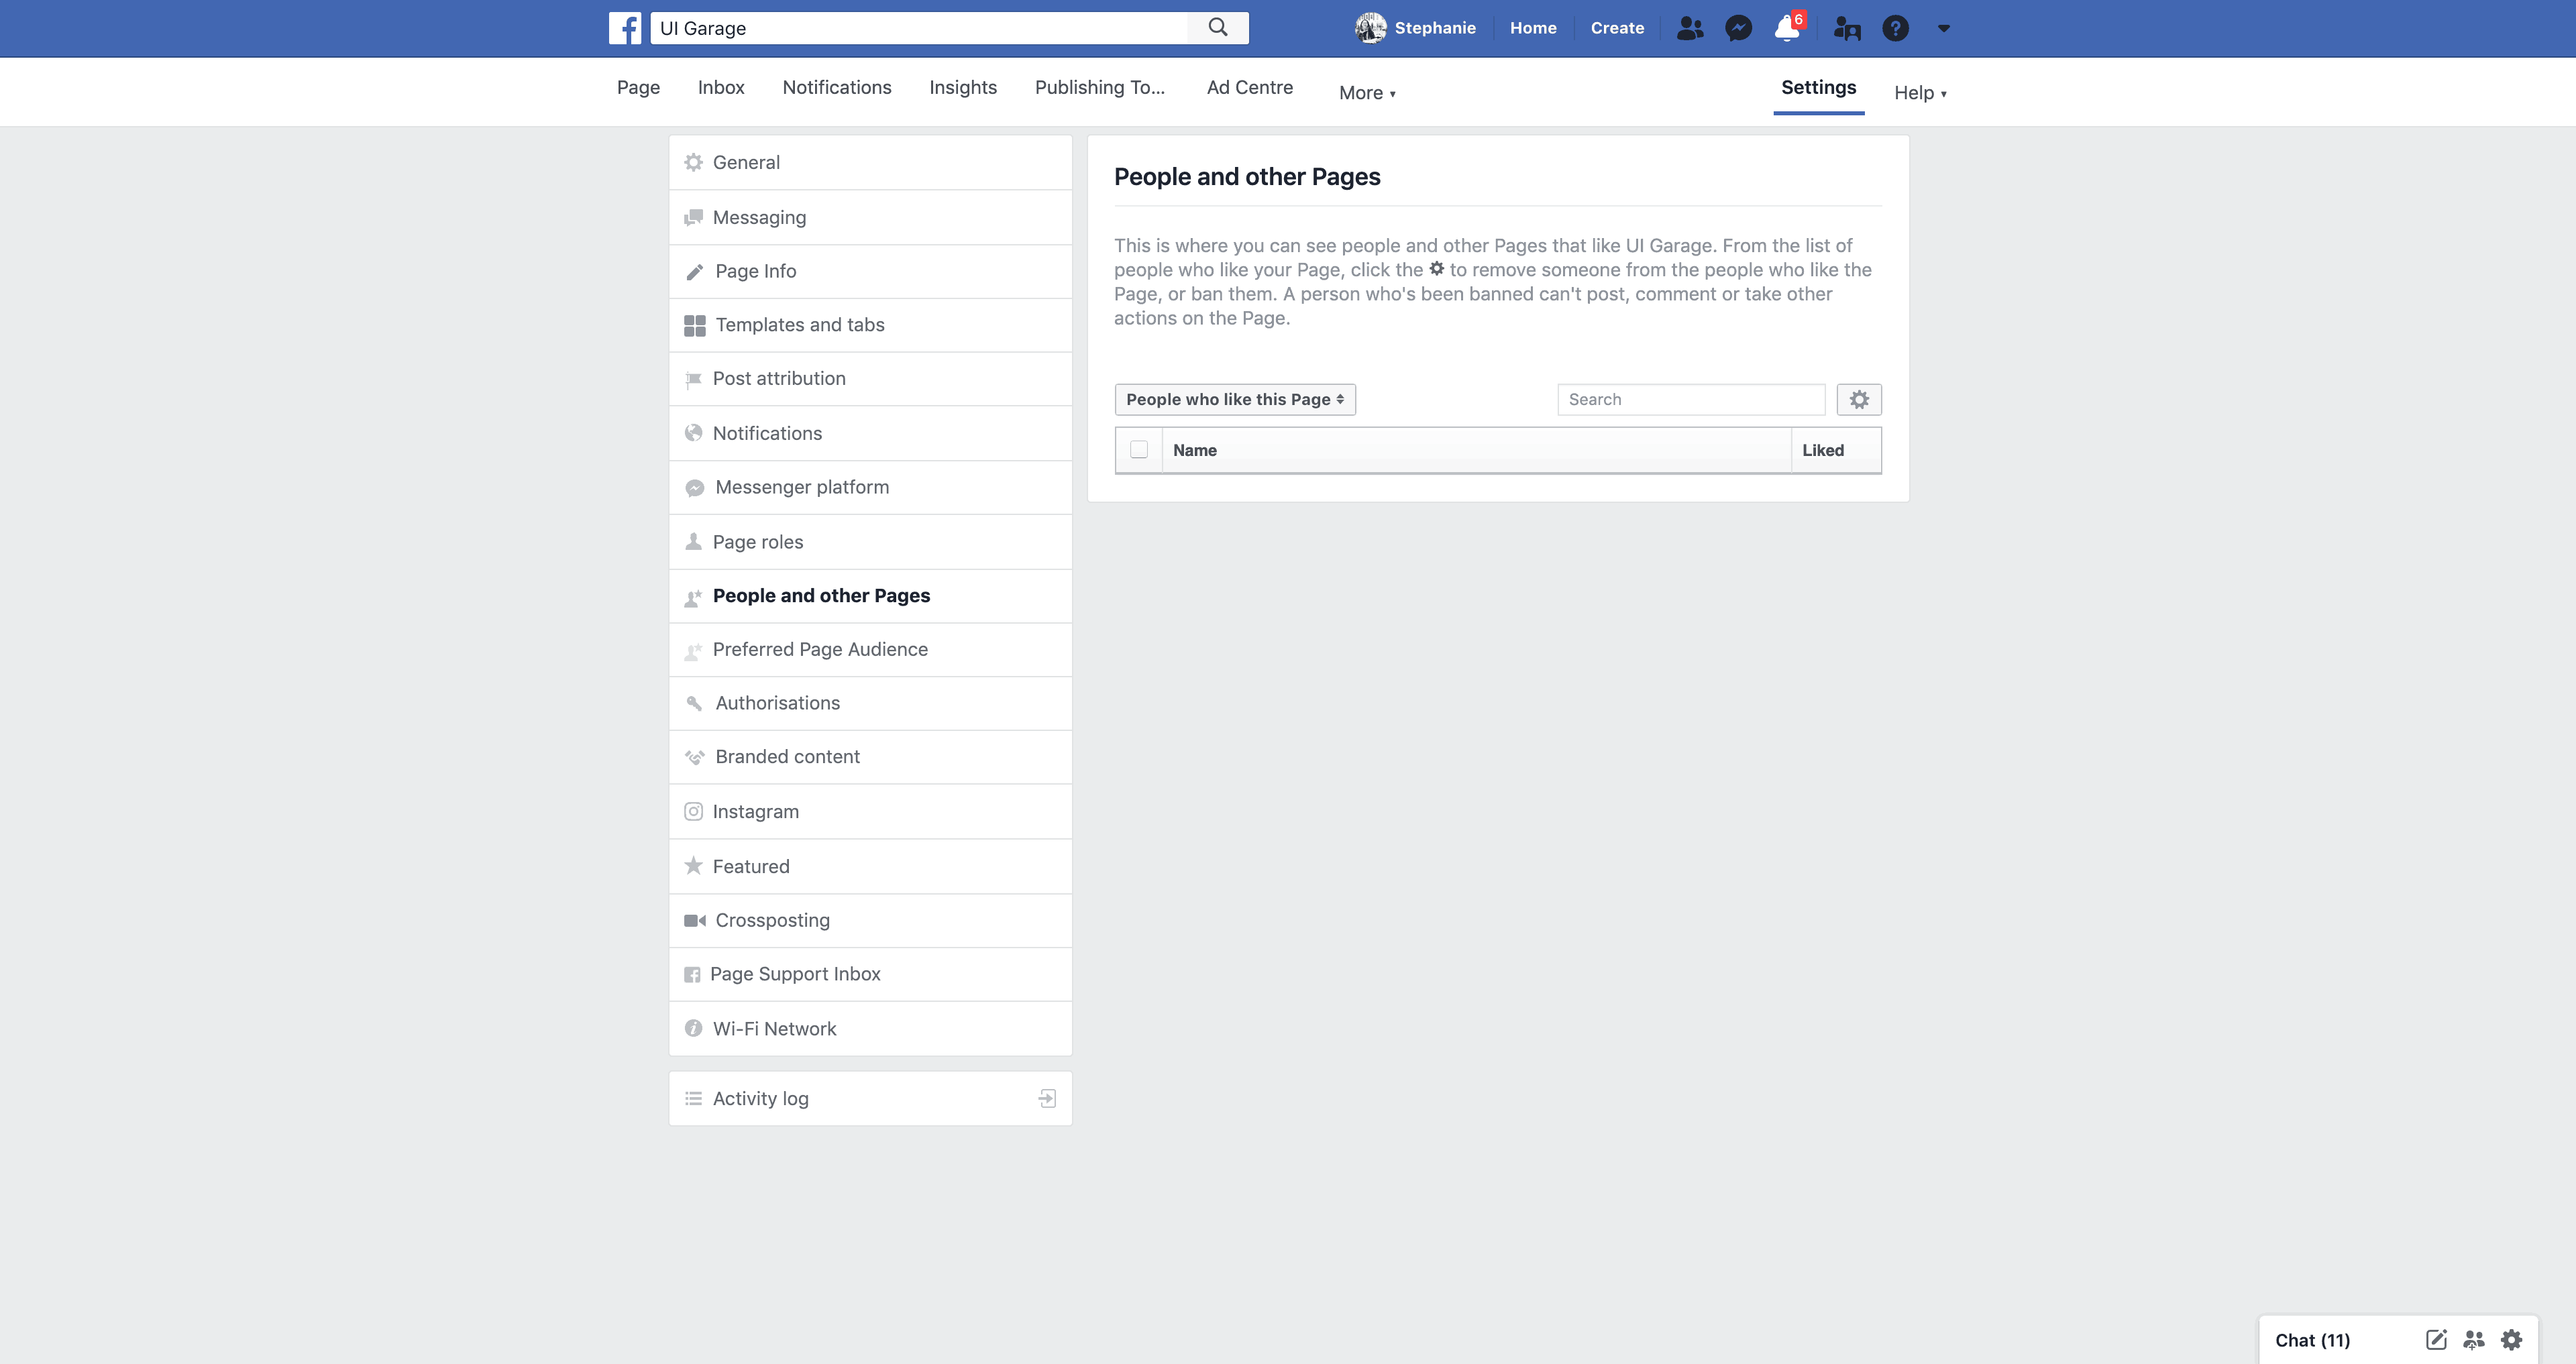 Page's people and other Pages Settings by Facebook from UIGarage